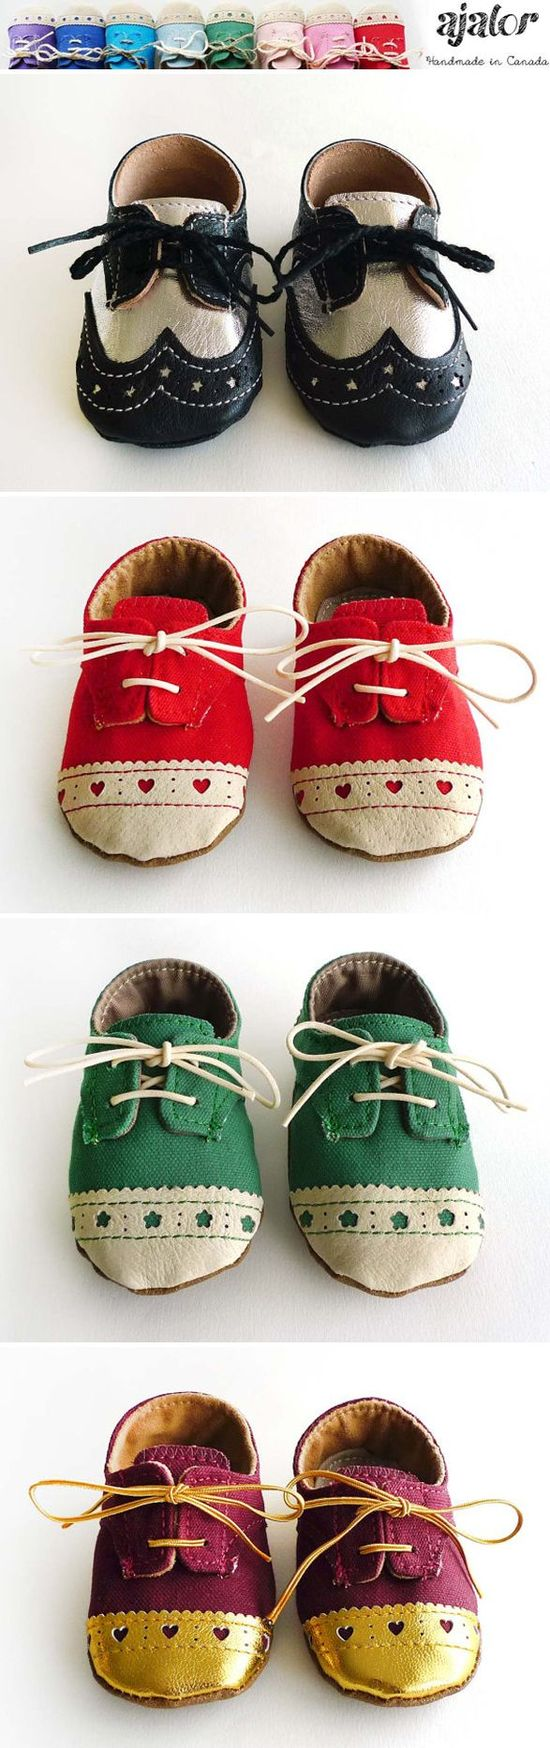 Handmade baby shoes from Ajalor